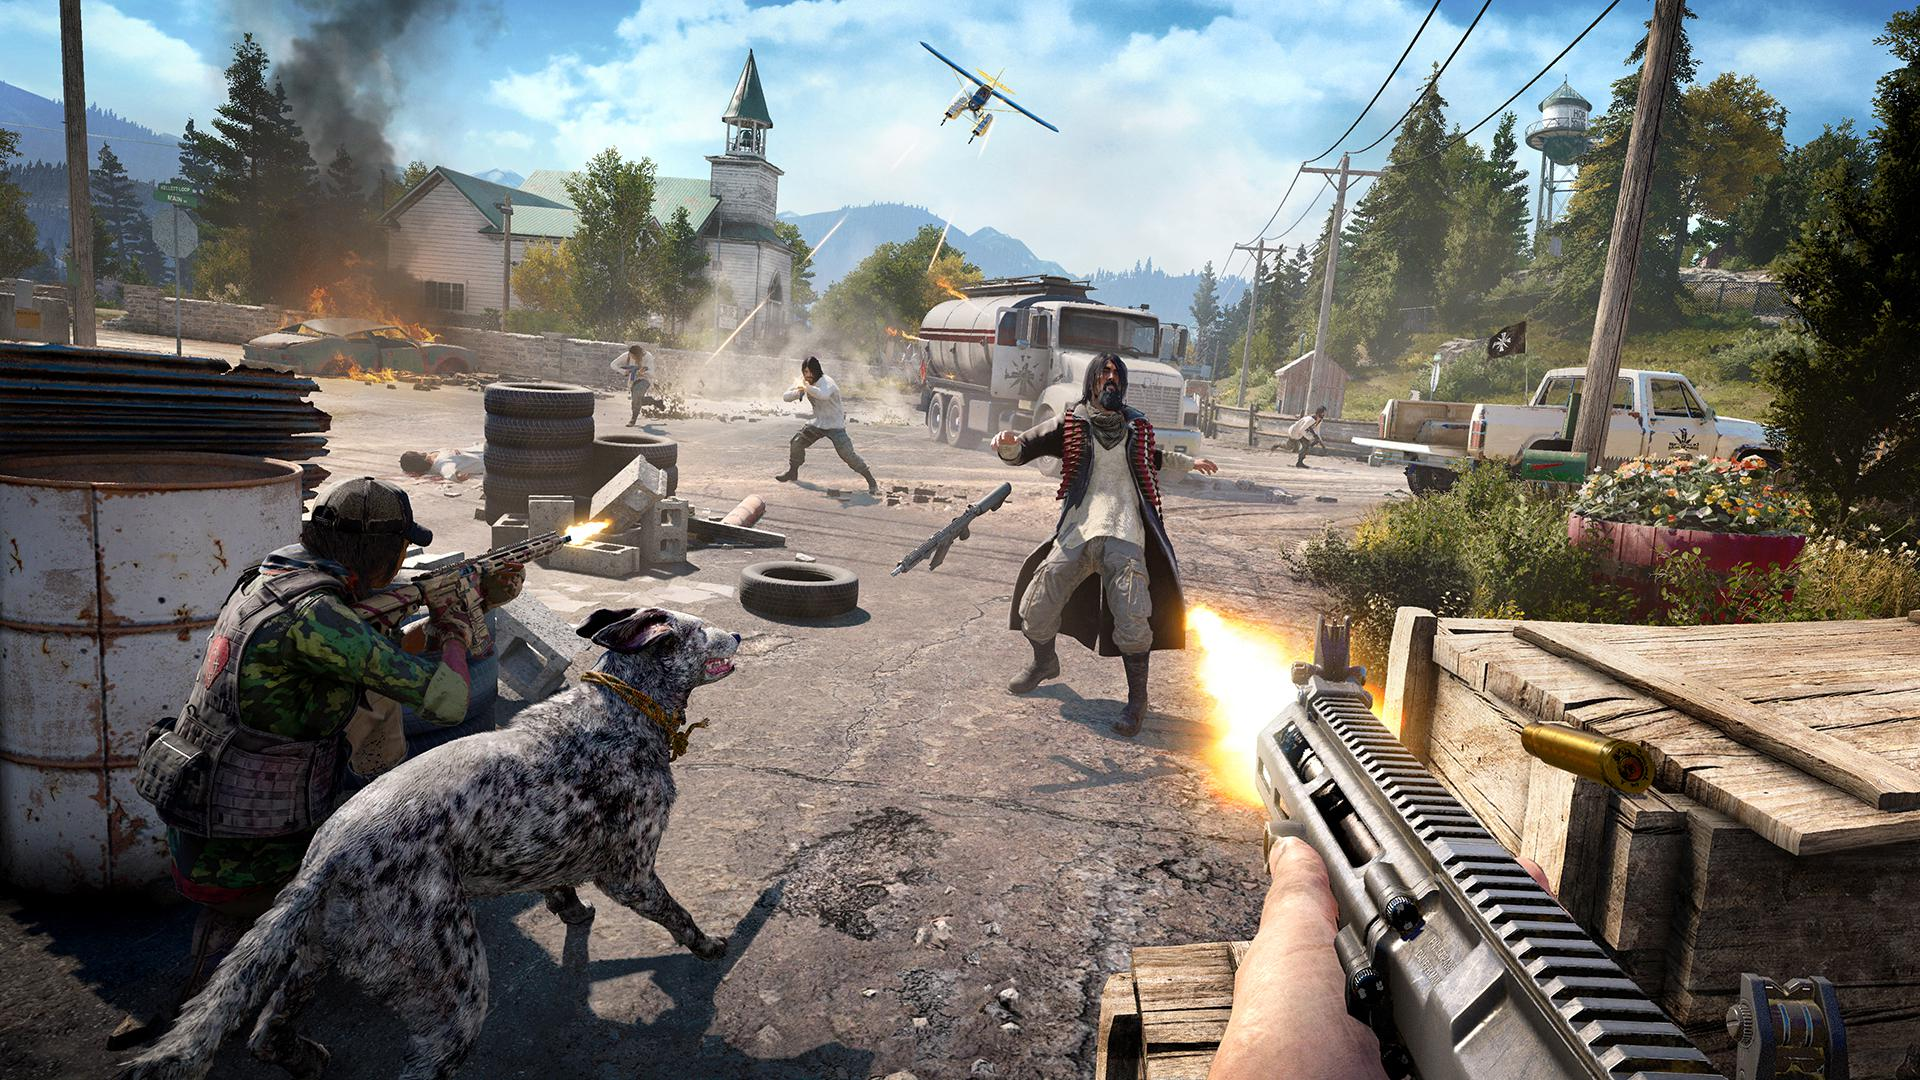 The latest Far Cry promises a lot of brutal action – not to mention an enormous open world for you to explore